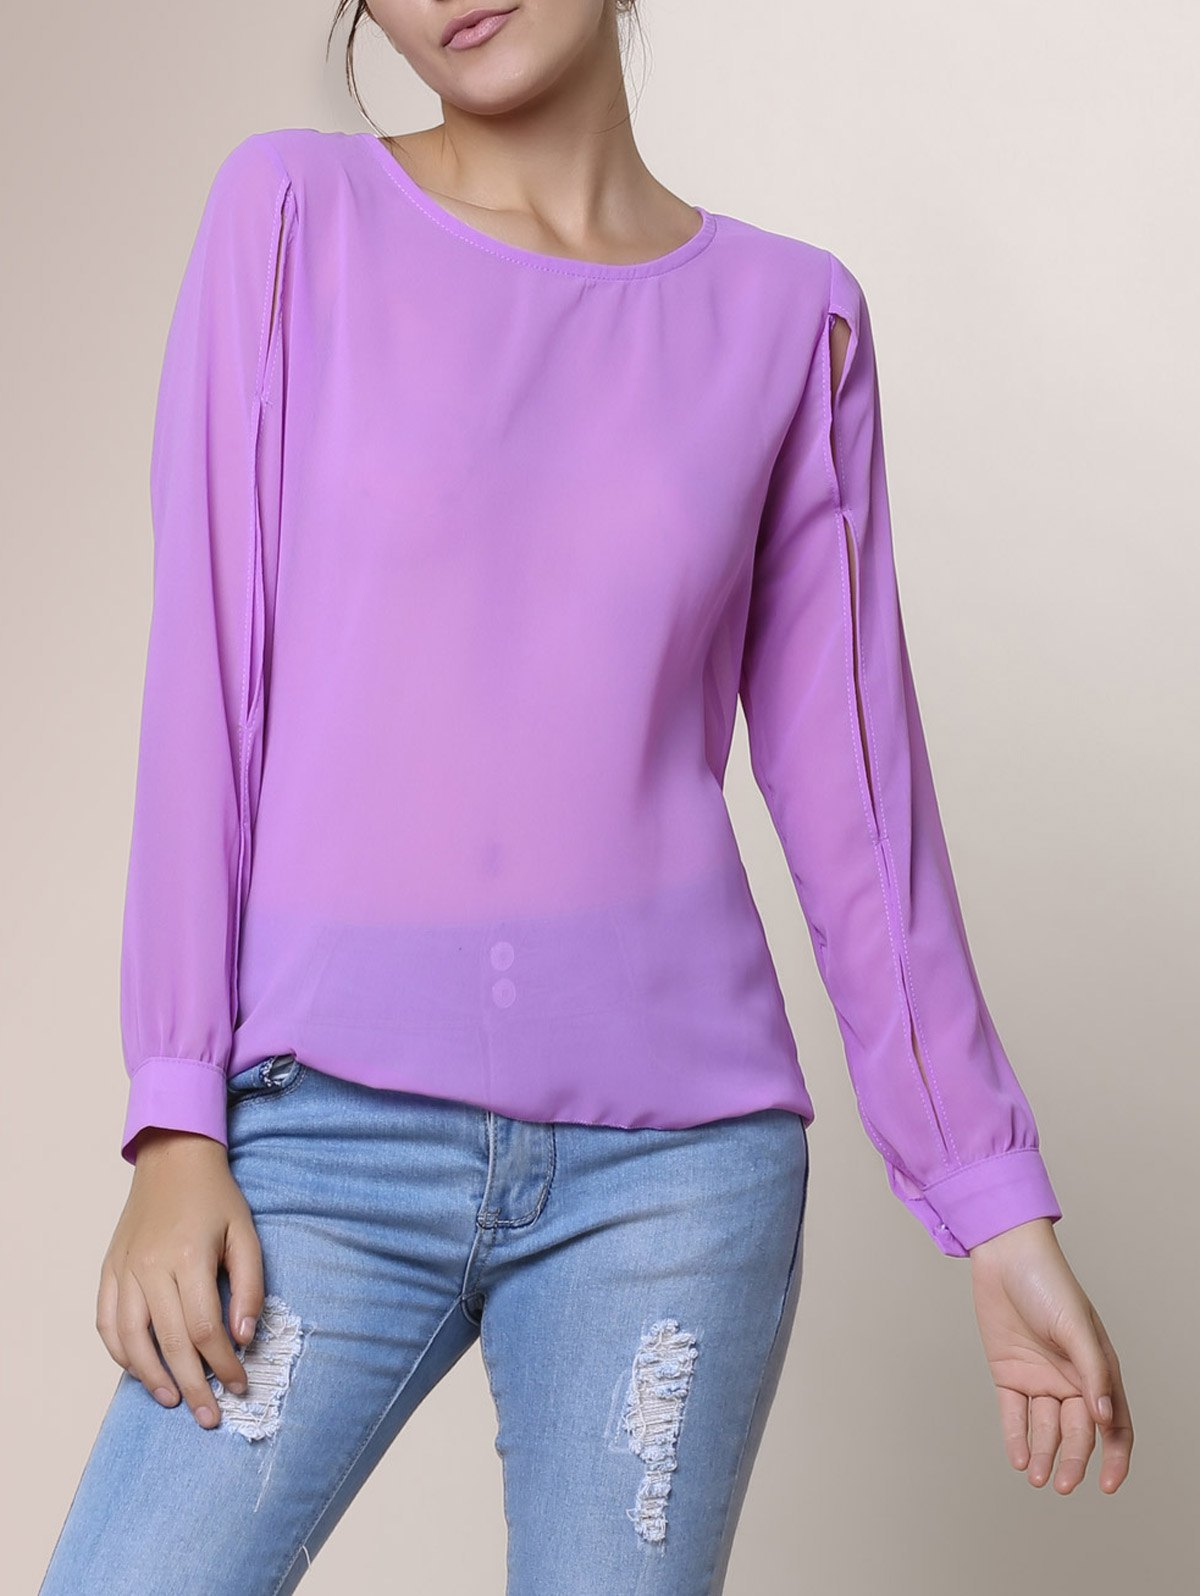 Casual Jewel Neck Hollow Out Long Sleeve Chiffon Blouse For Women - PURPLE L